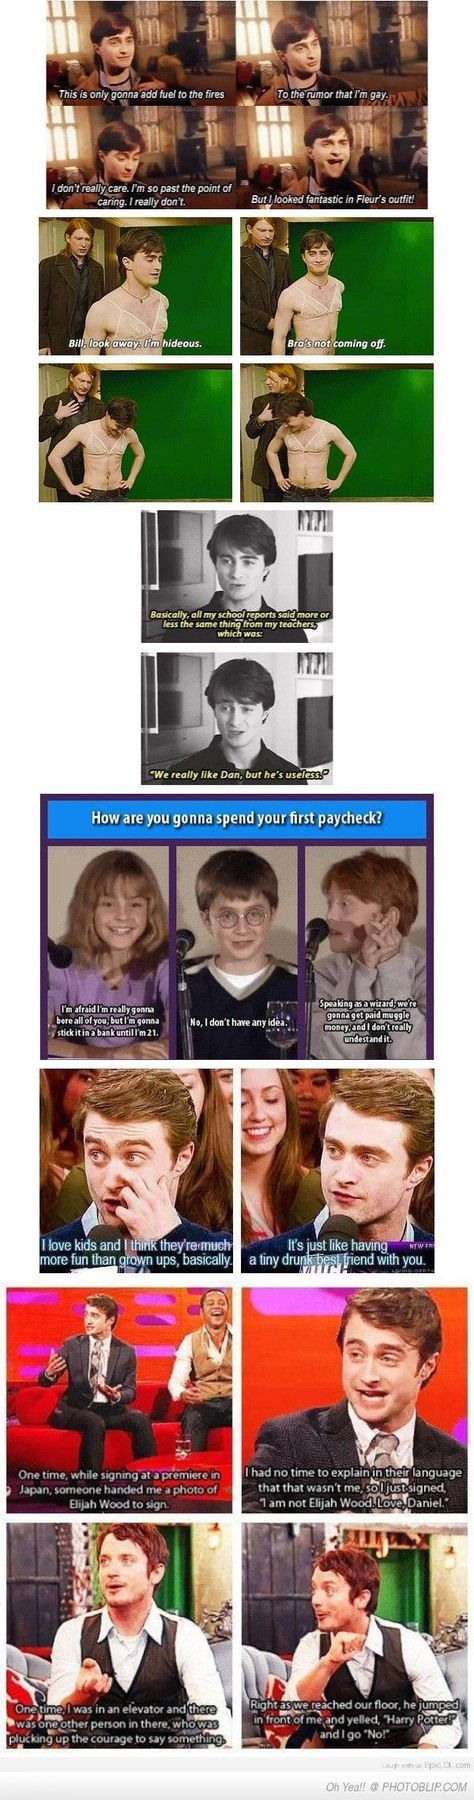 Funny Harry Potter Behind The Scenes Daniel Radcliffe 63 Ideas In 2020 Harry Potter Funny Harry Potter Quotes Harry Potter Memes Hilarious